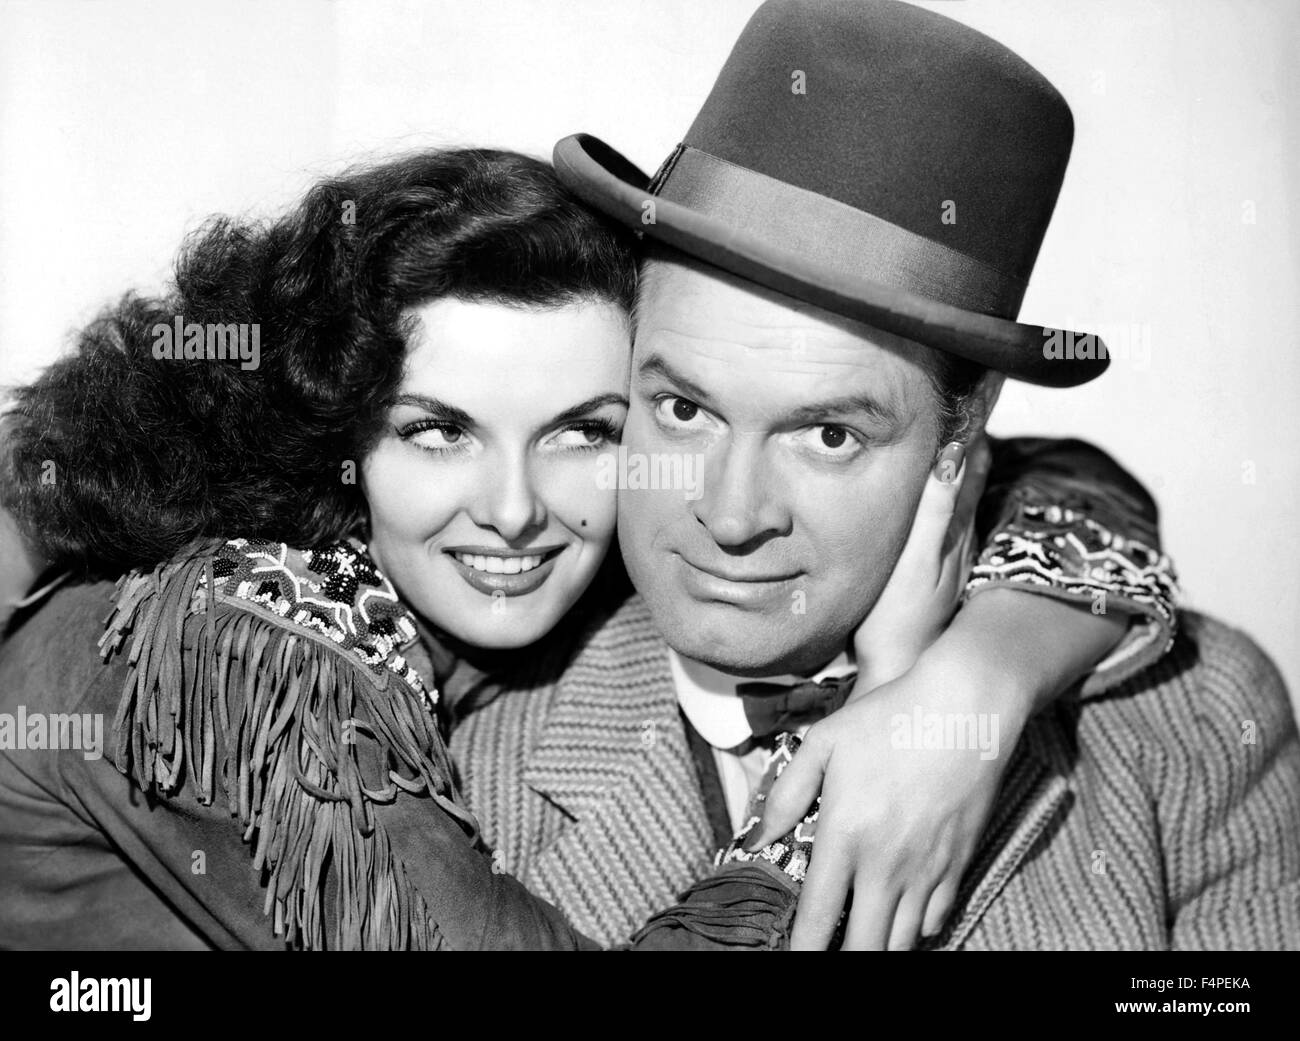 Jane Russell and Bob Hope / The Paleface / 1948 directed by Norman Z. McLeod - Stock Image